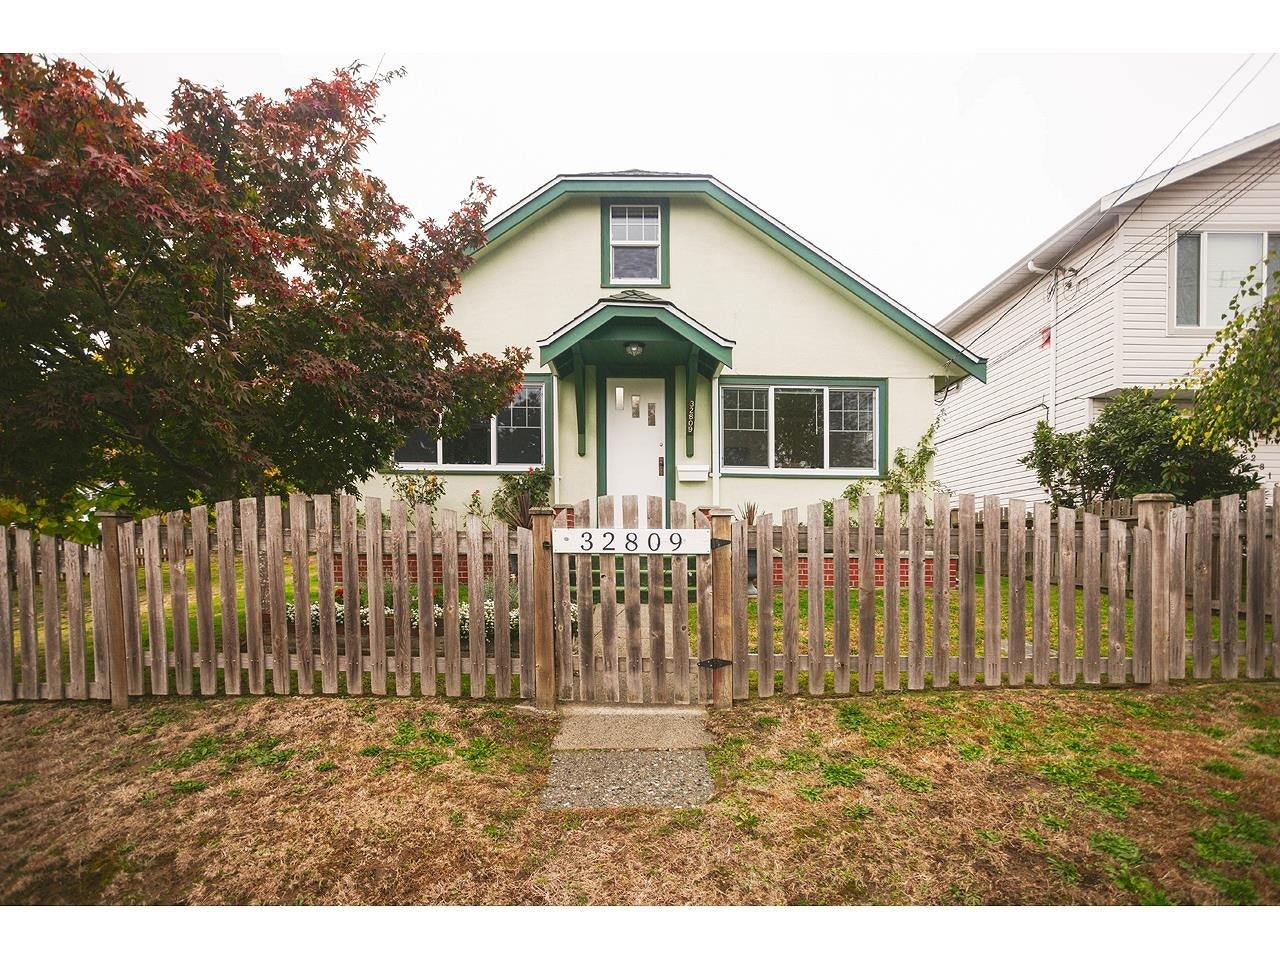 32809 3RD AVENUE - Mission BC House/Single Family for sale, 4 Bedrooms (R2625478)